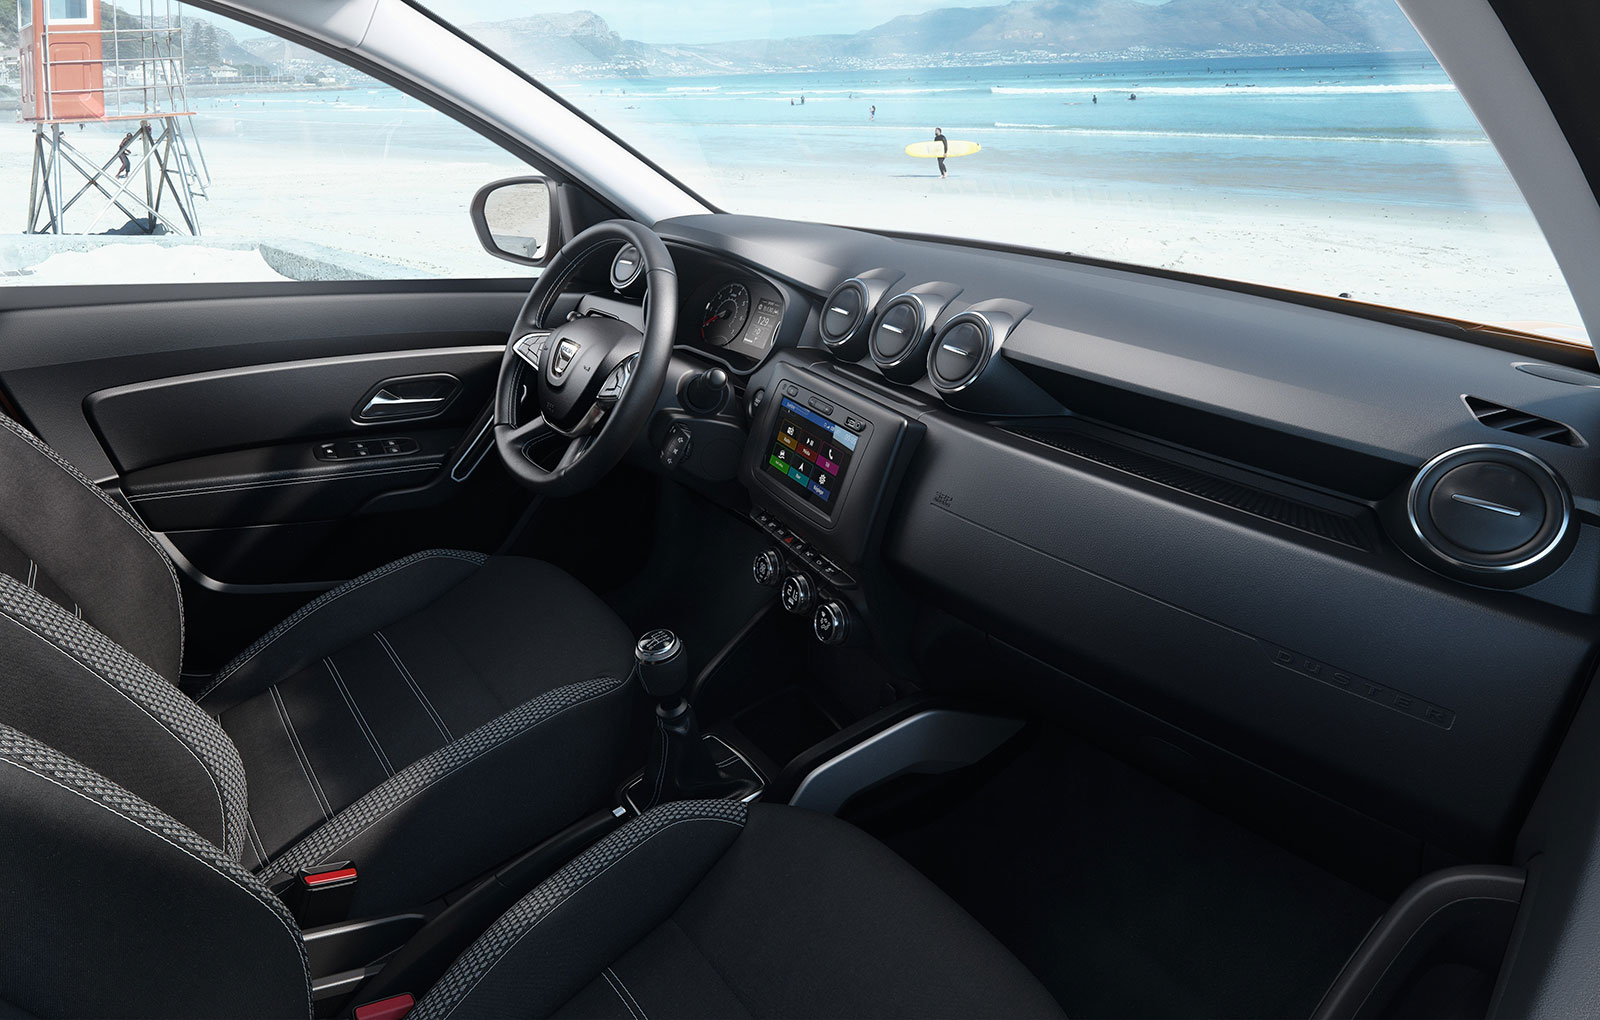 Dacia launched the new duster 2018 for New interior